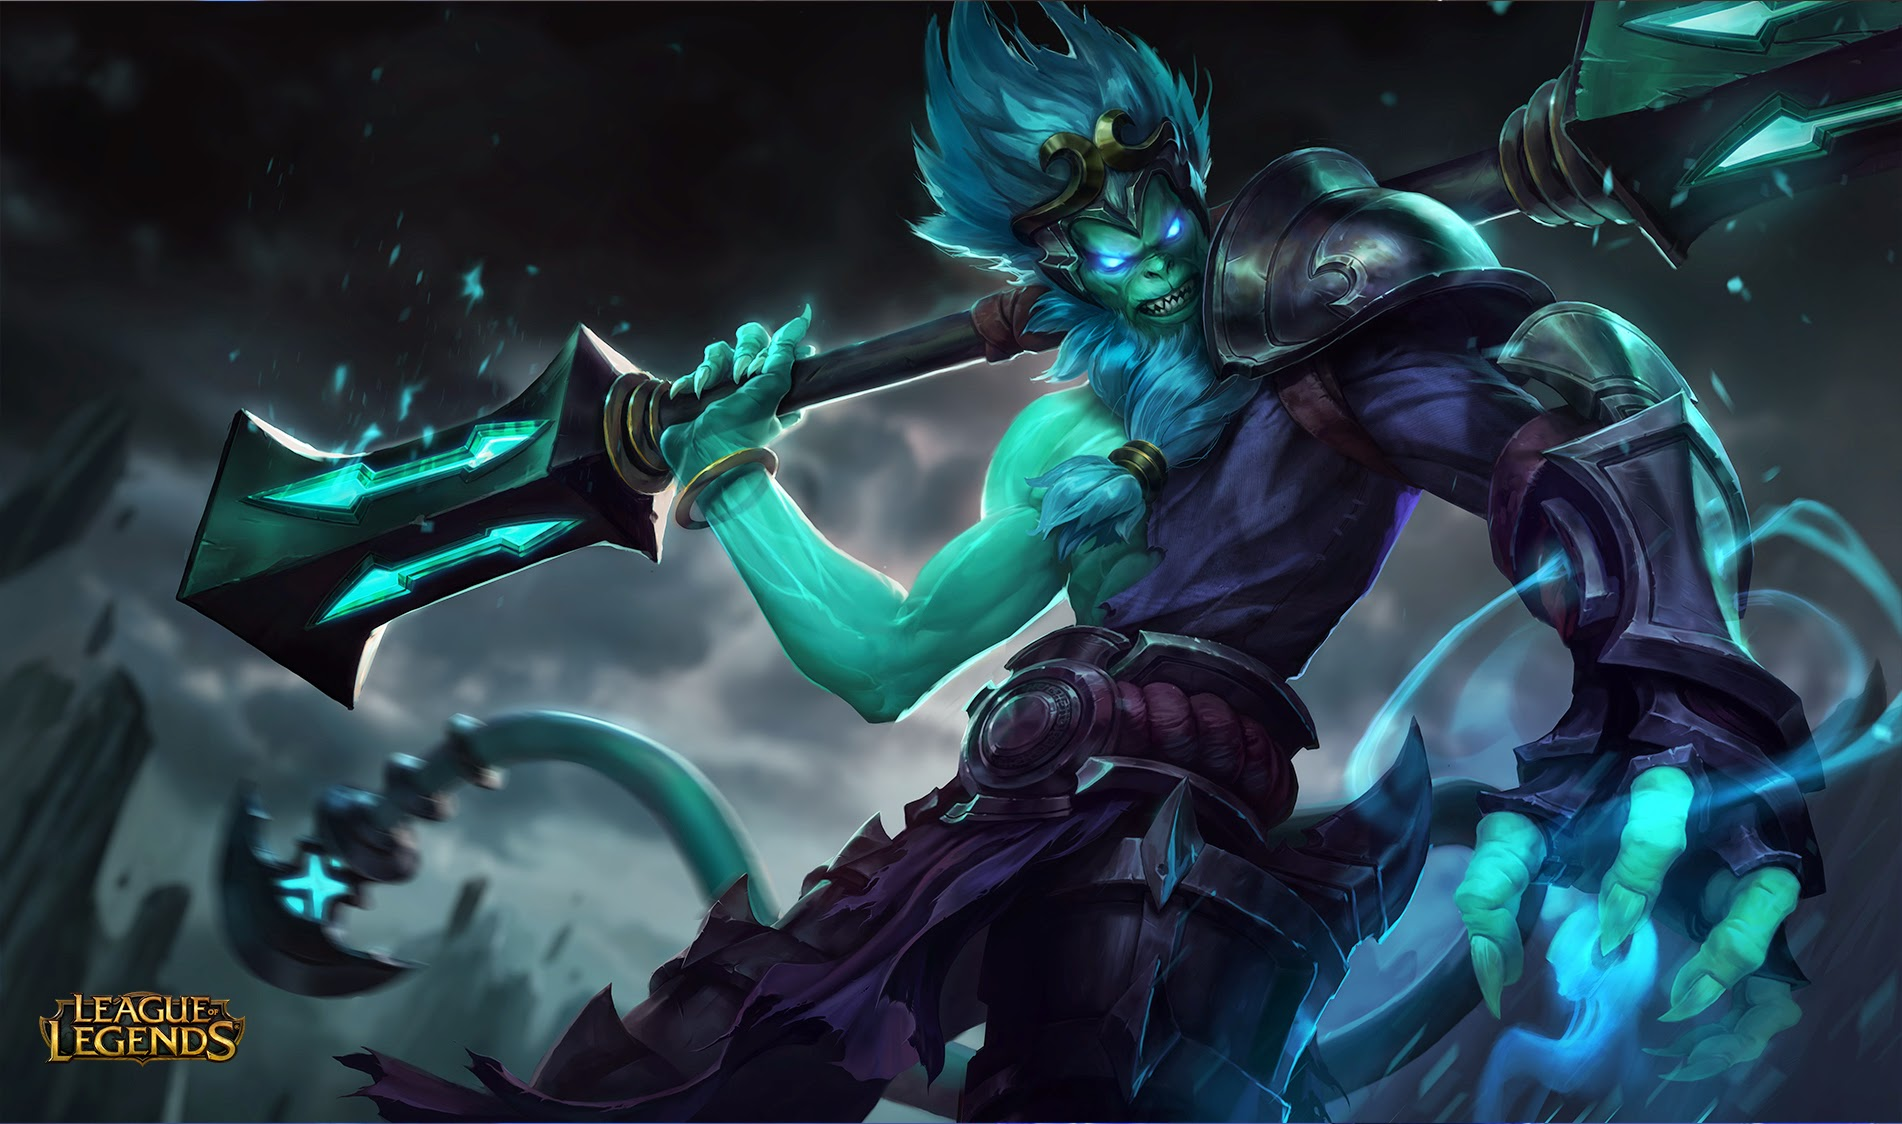 Underworld Wukong wallpaper